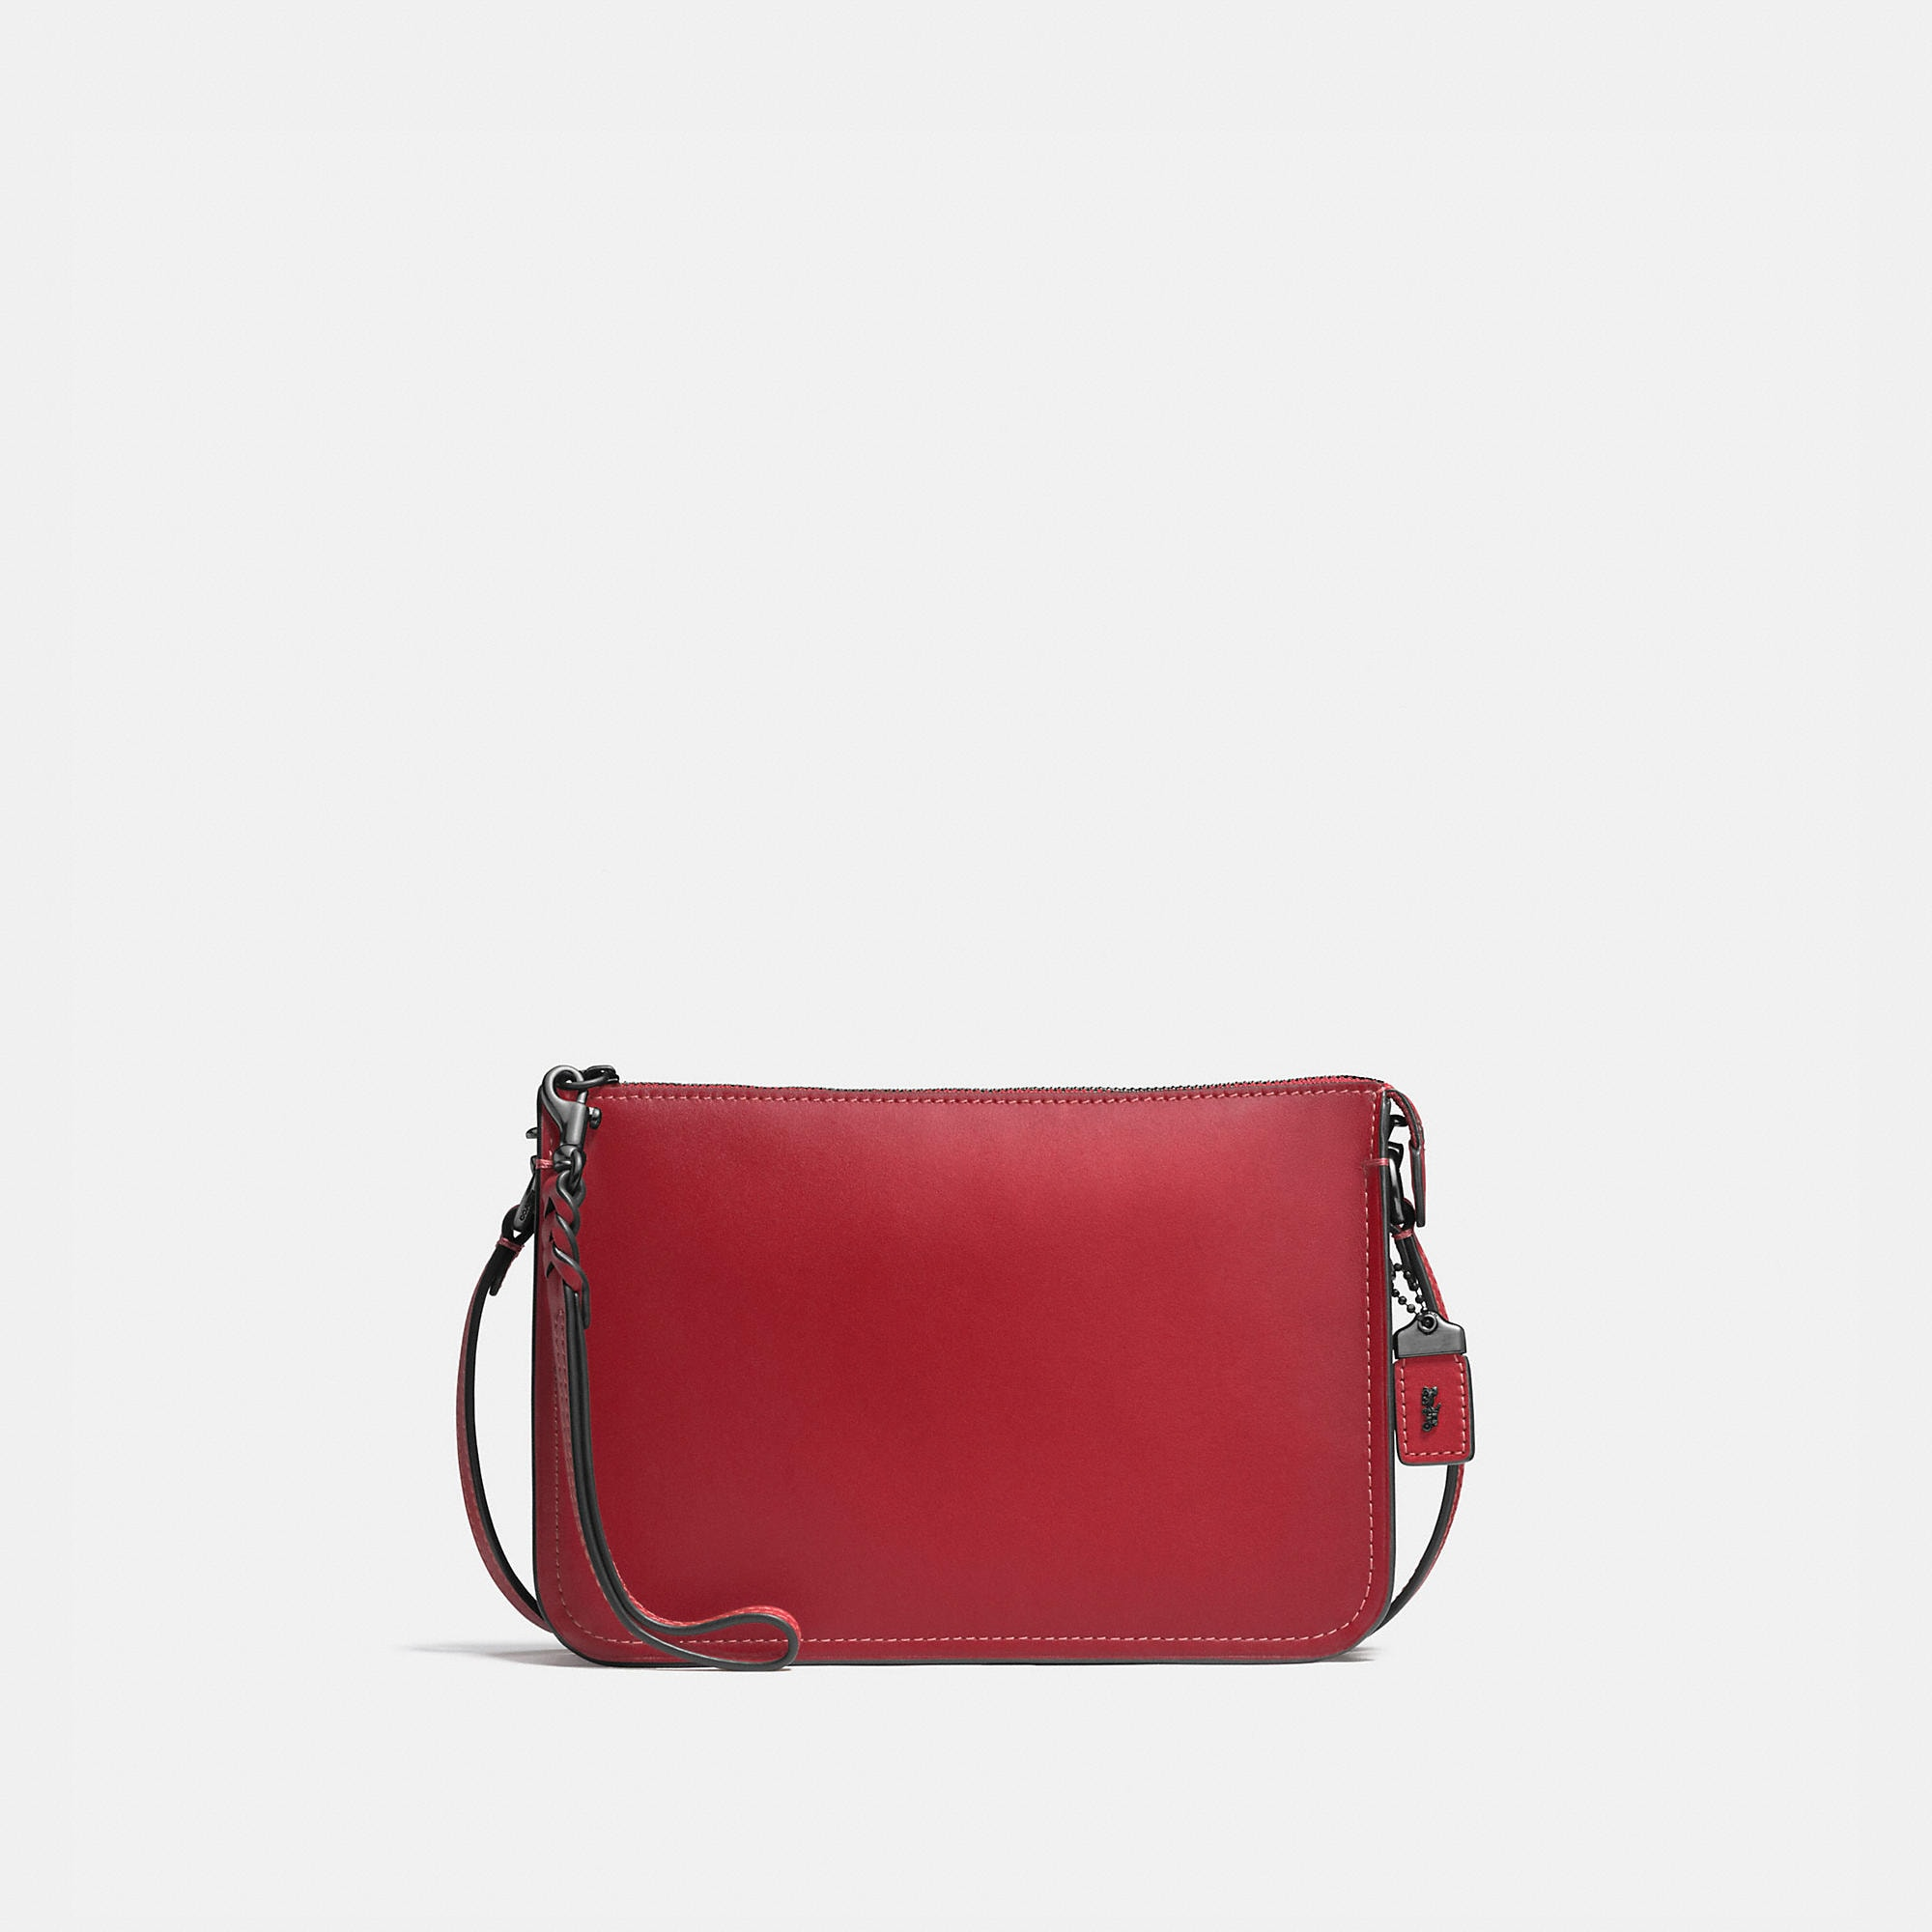 Coach Soho Crossbody